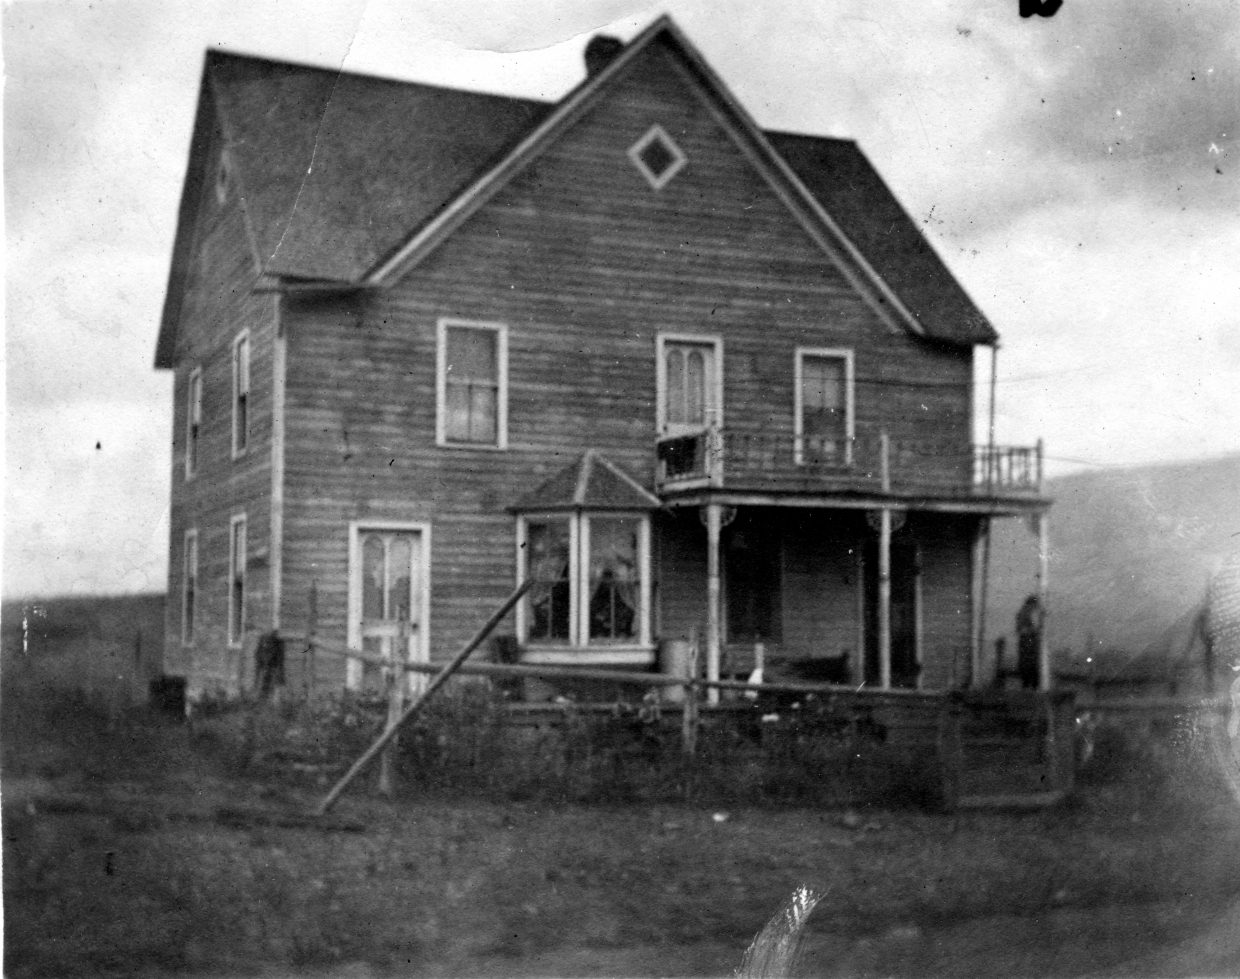 The home of Swiss immigrants Emile and Percede Gay was built at the turn of the 20th century in what now is known as Pleasant Valley. The ranch family earned extra money by hosting men and their horsepack trains on the way to timbering operations on Sarvis Creek.